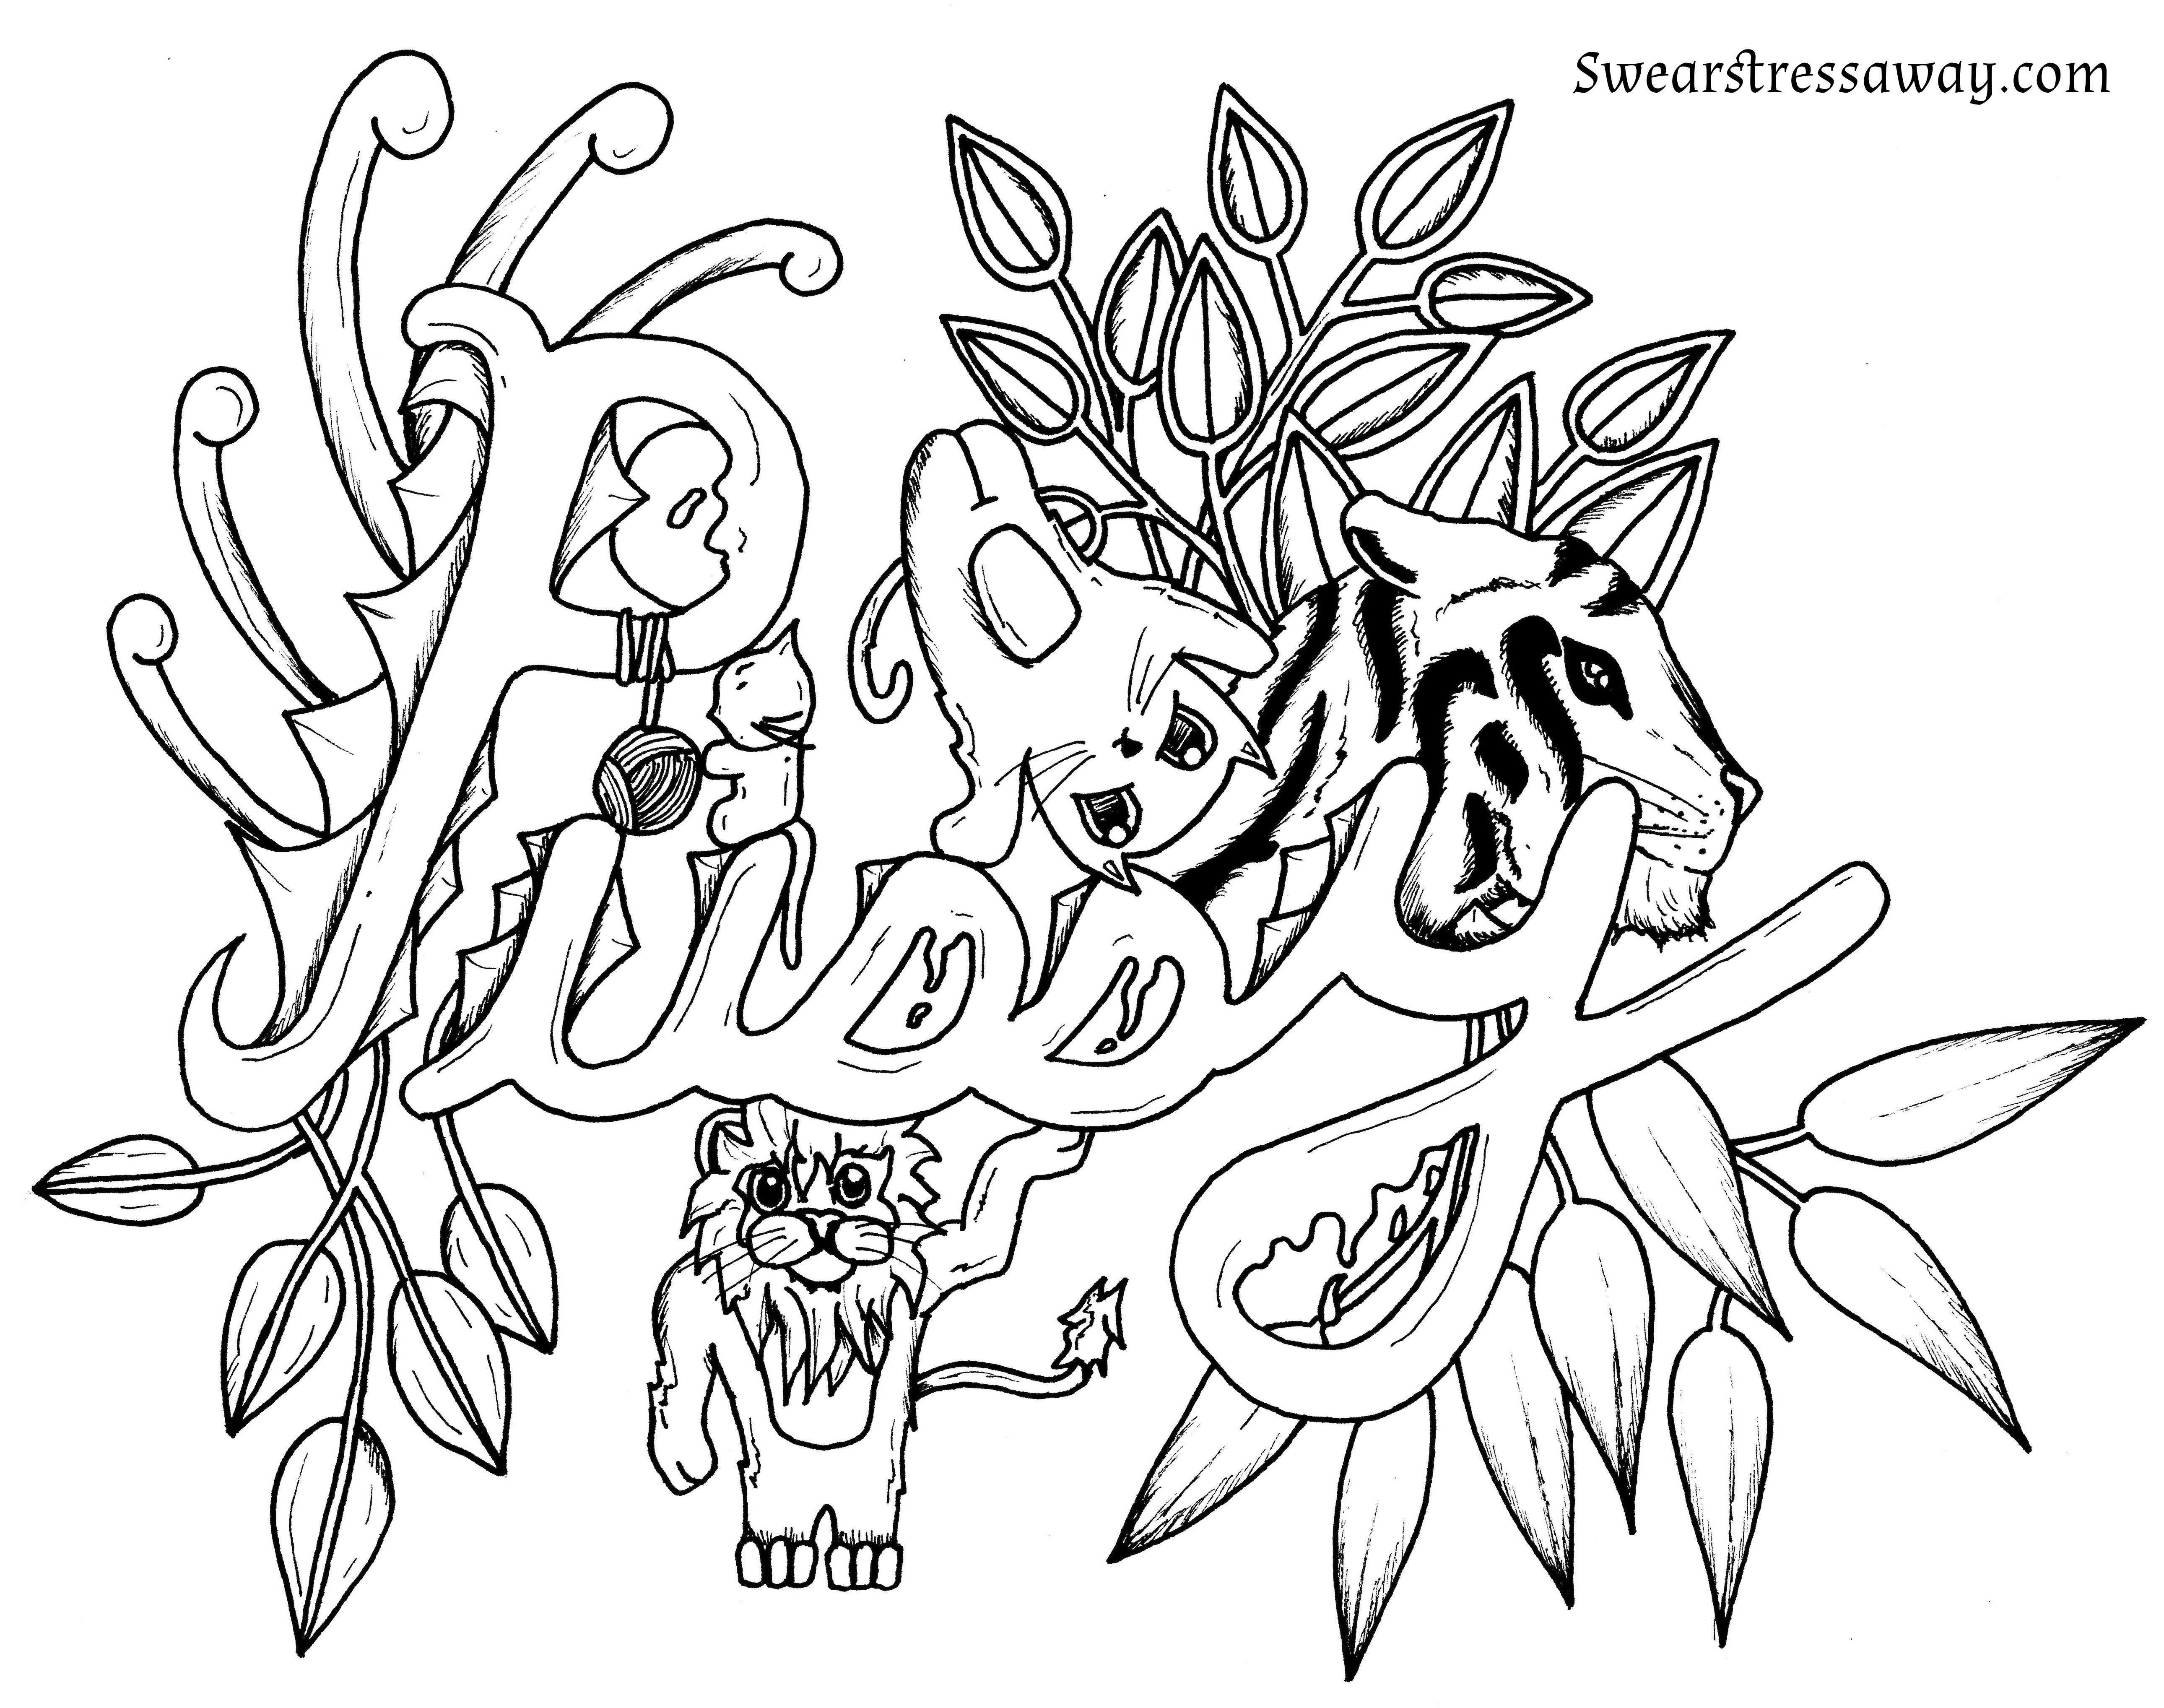 Bad word coloring pages - Pussy Swear Word Coloring Page Adult Coloring Page Swearstressaway Com Comes